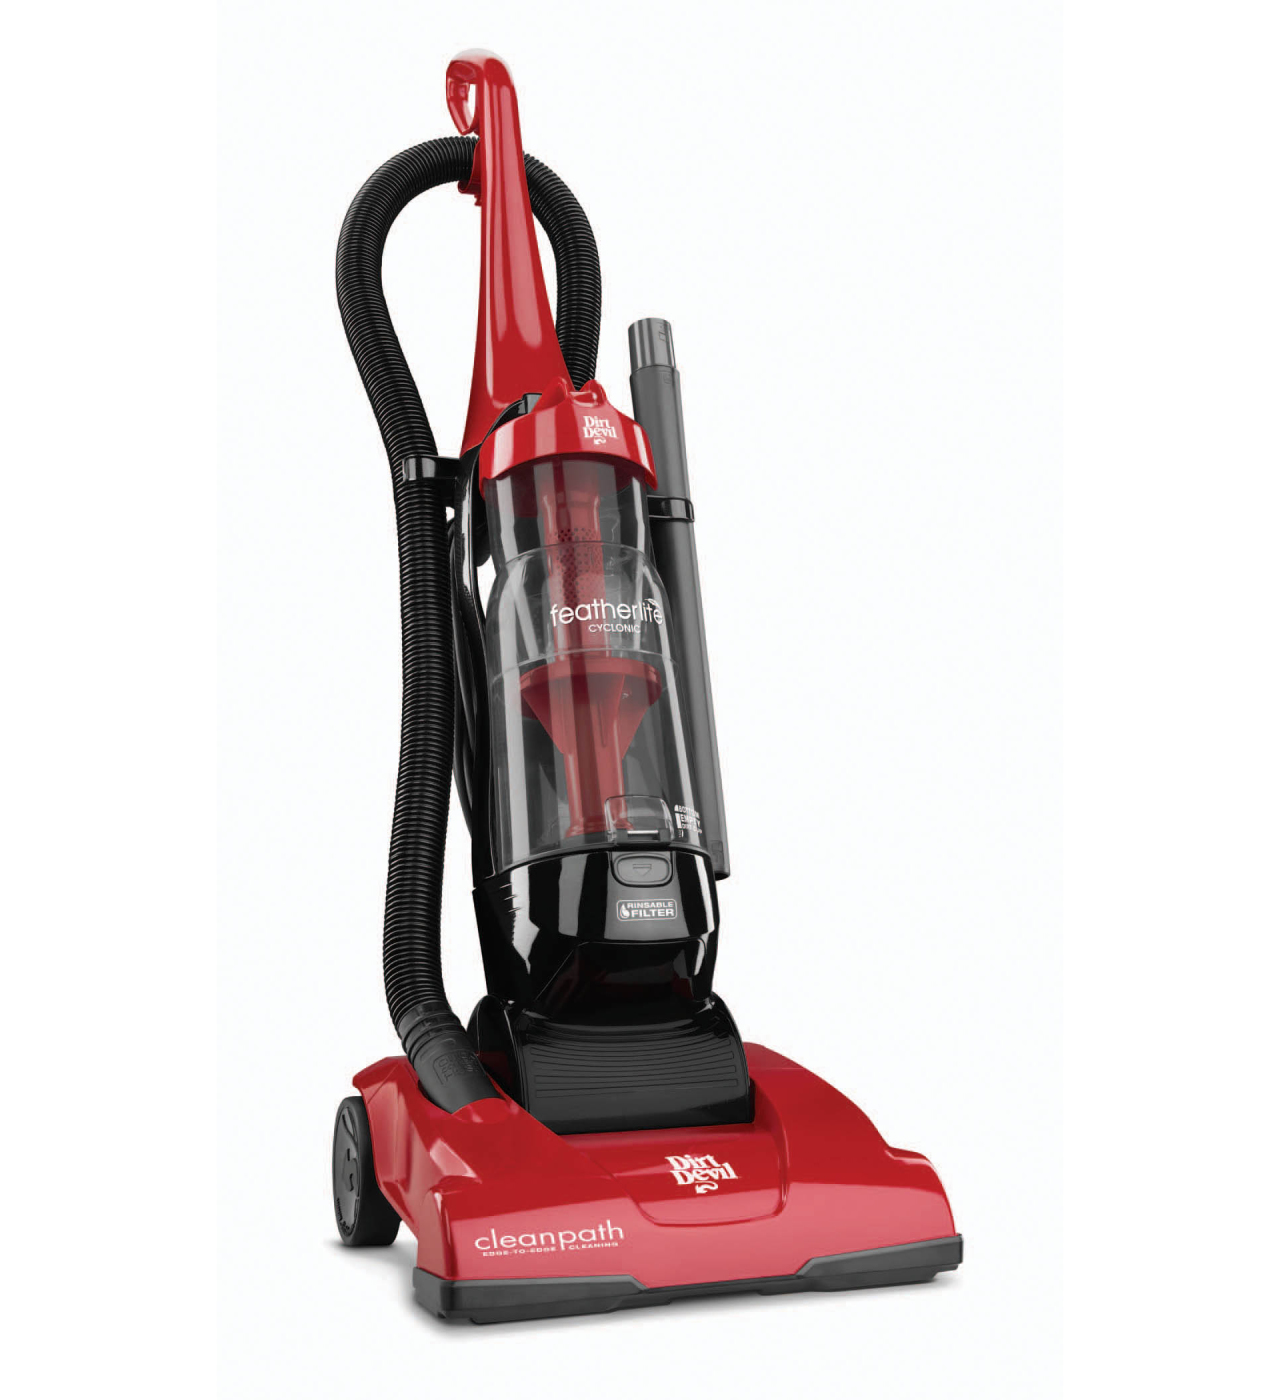 hoover bagless vacuum cleaner helix images